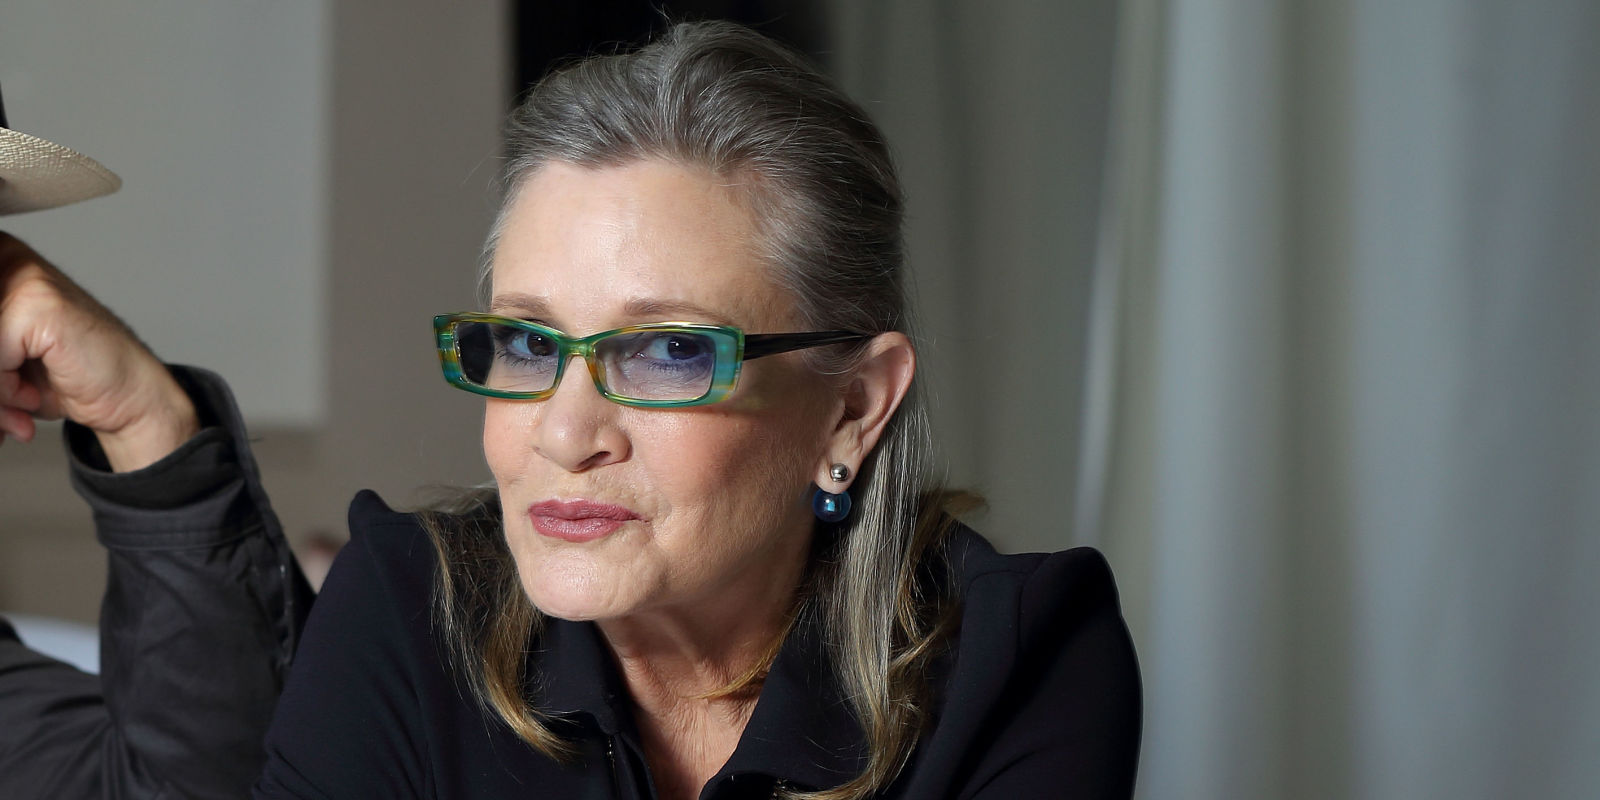 Carrie Fisher Once Sent A Cow Tongue To A Producer Who Sexually Assaulted Her Friend